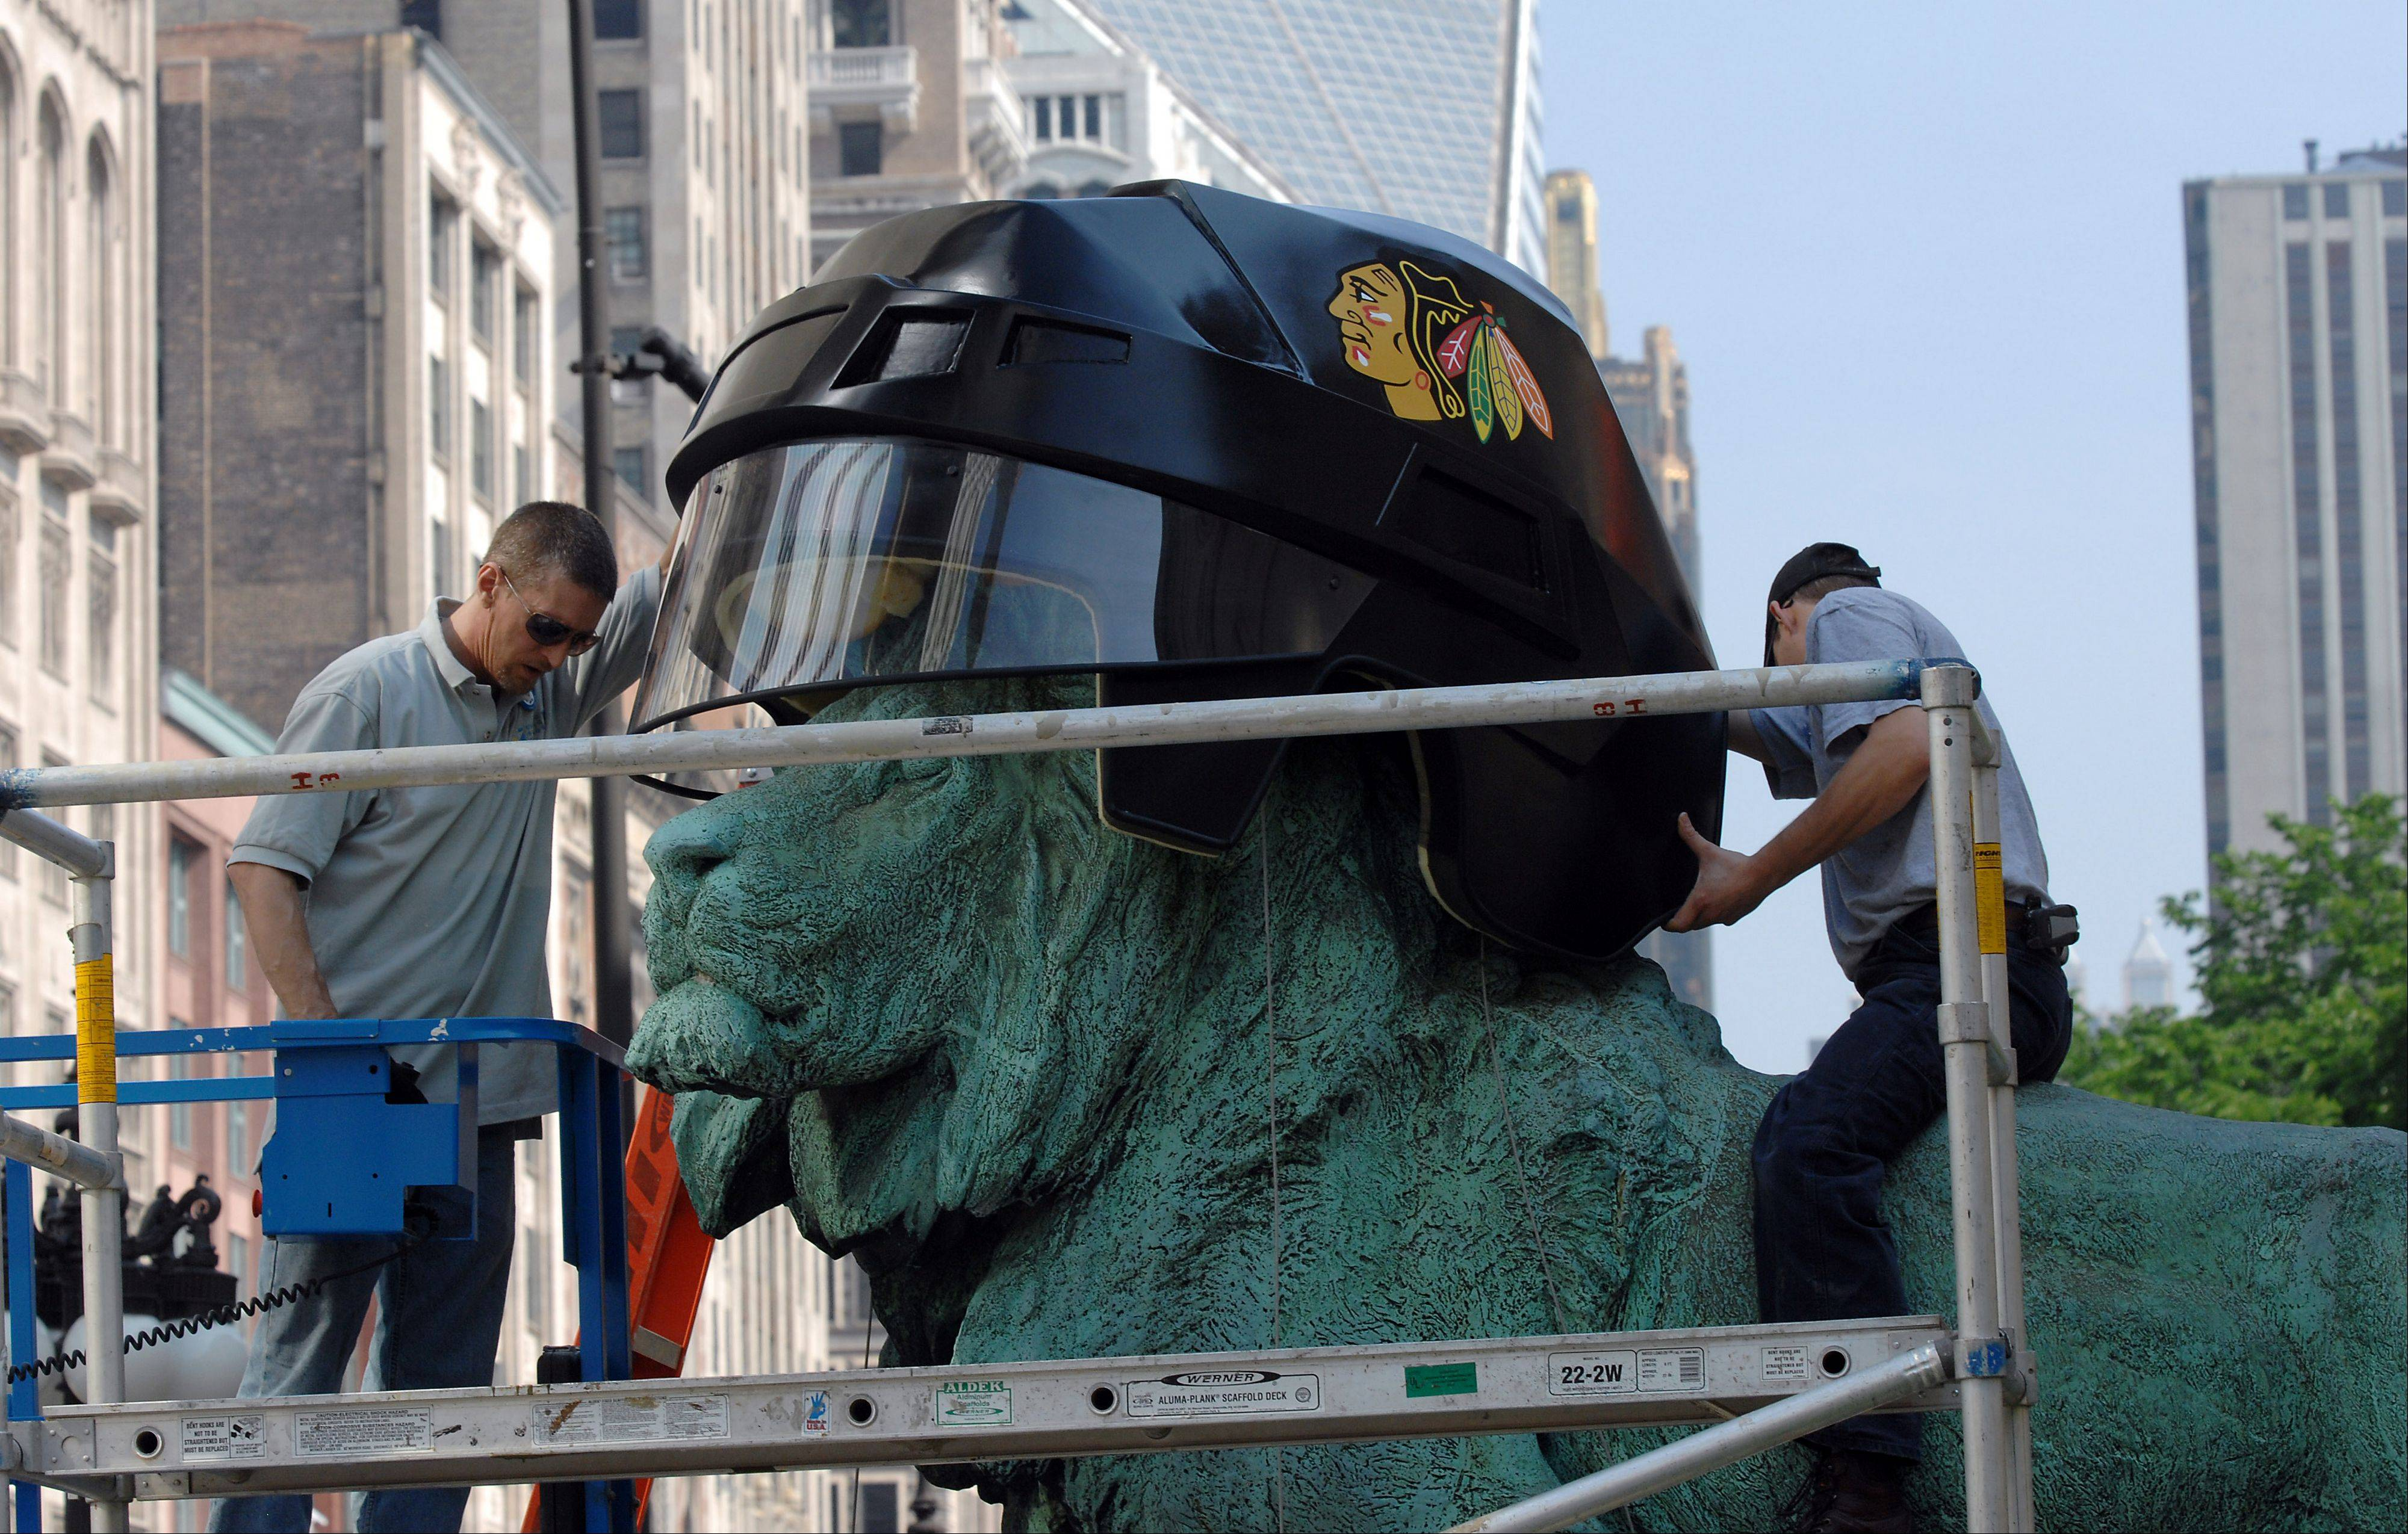 Workers fit the South lion called �standing in an attitude of defiance� with an oversized Chicago Blackhawks helmet before the teams 2010 Stanley Cup victory.